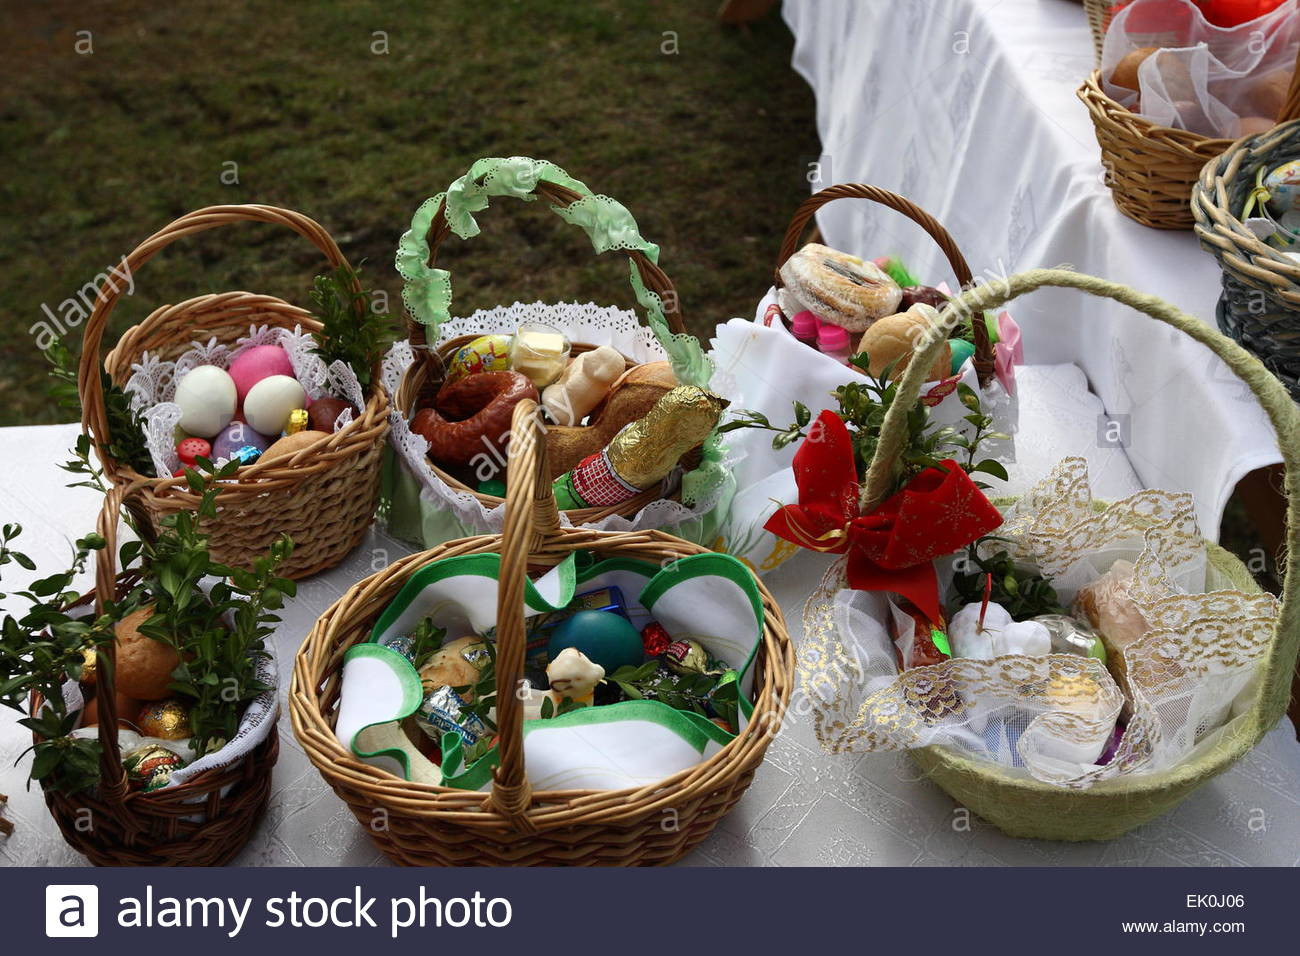 Lamb Easter Basket  Sobowidz Poland 4th April 2015 Swieconka the tradition